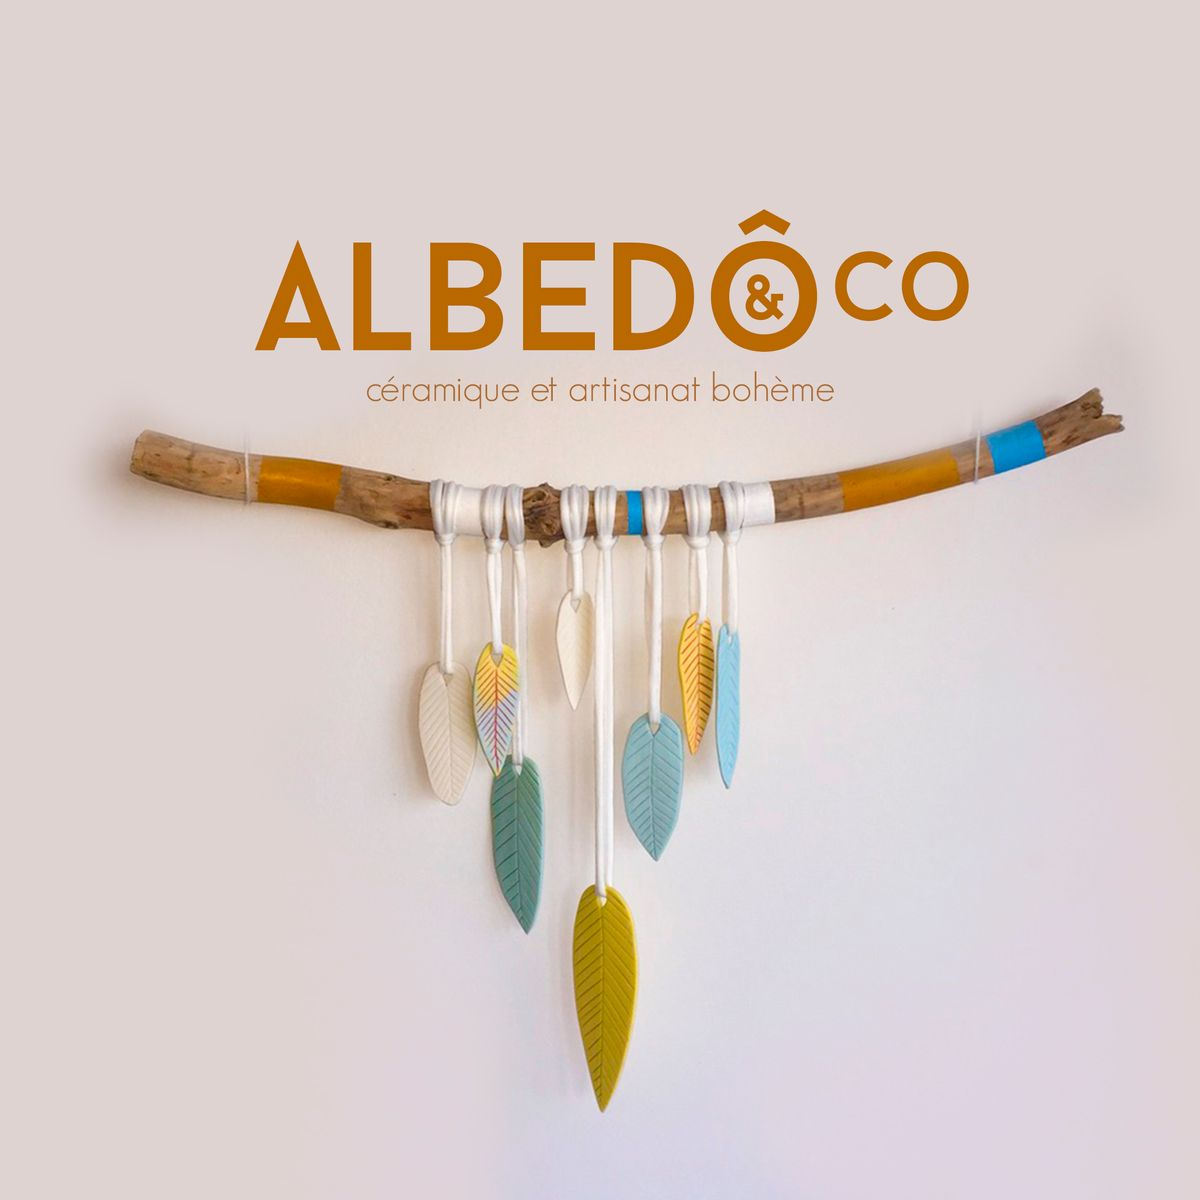 ALBEDô&co_image